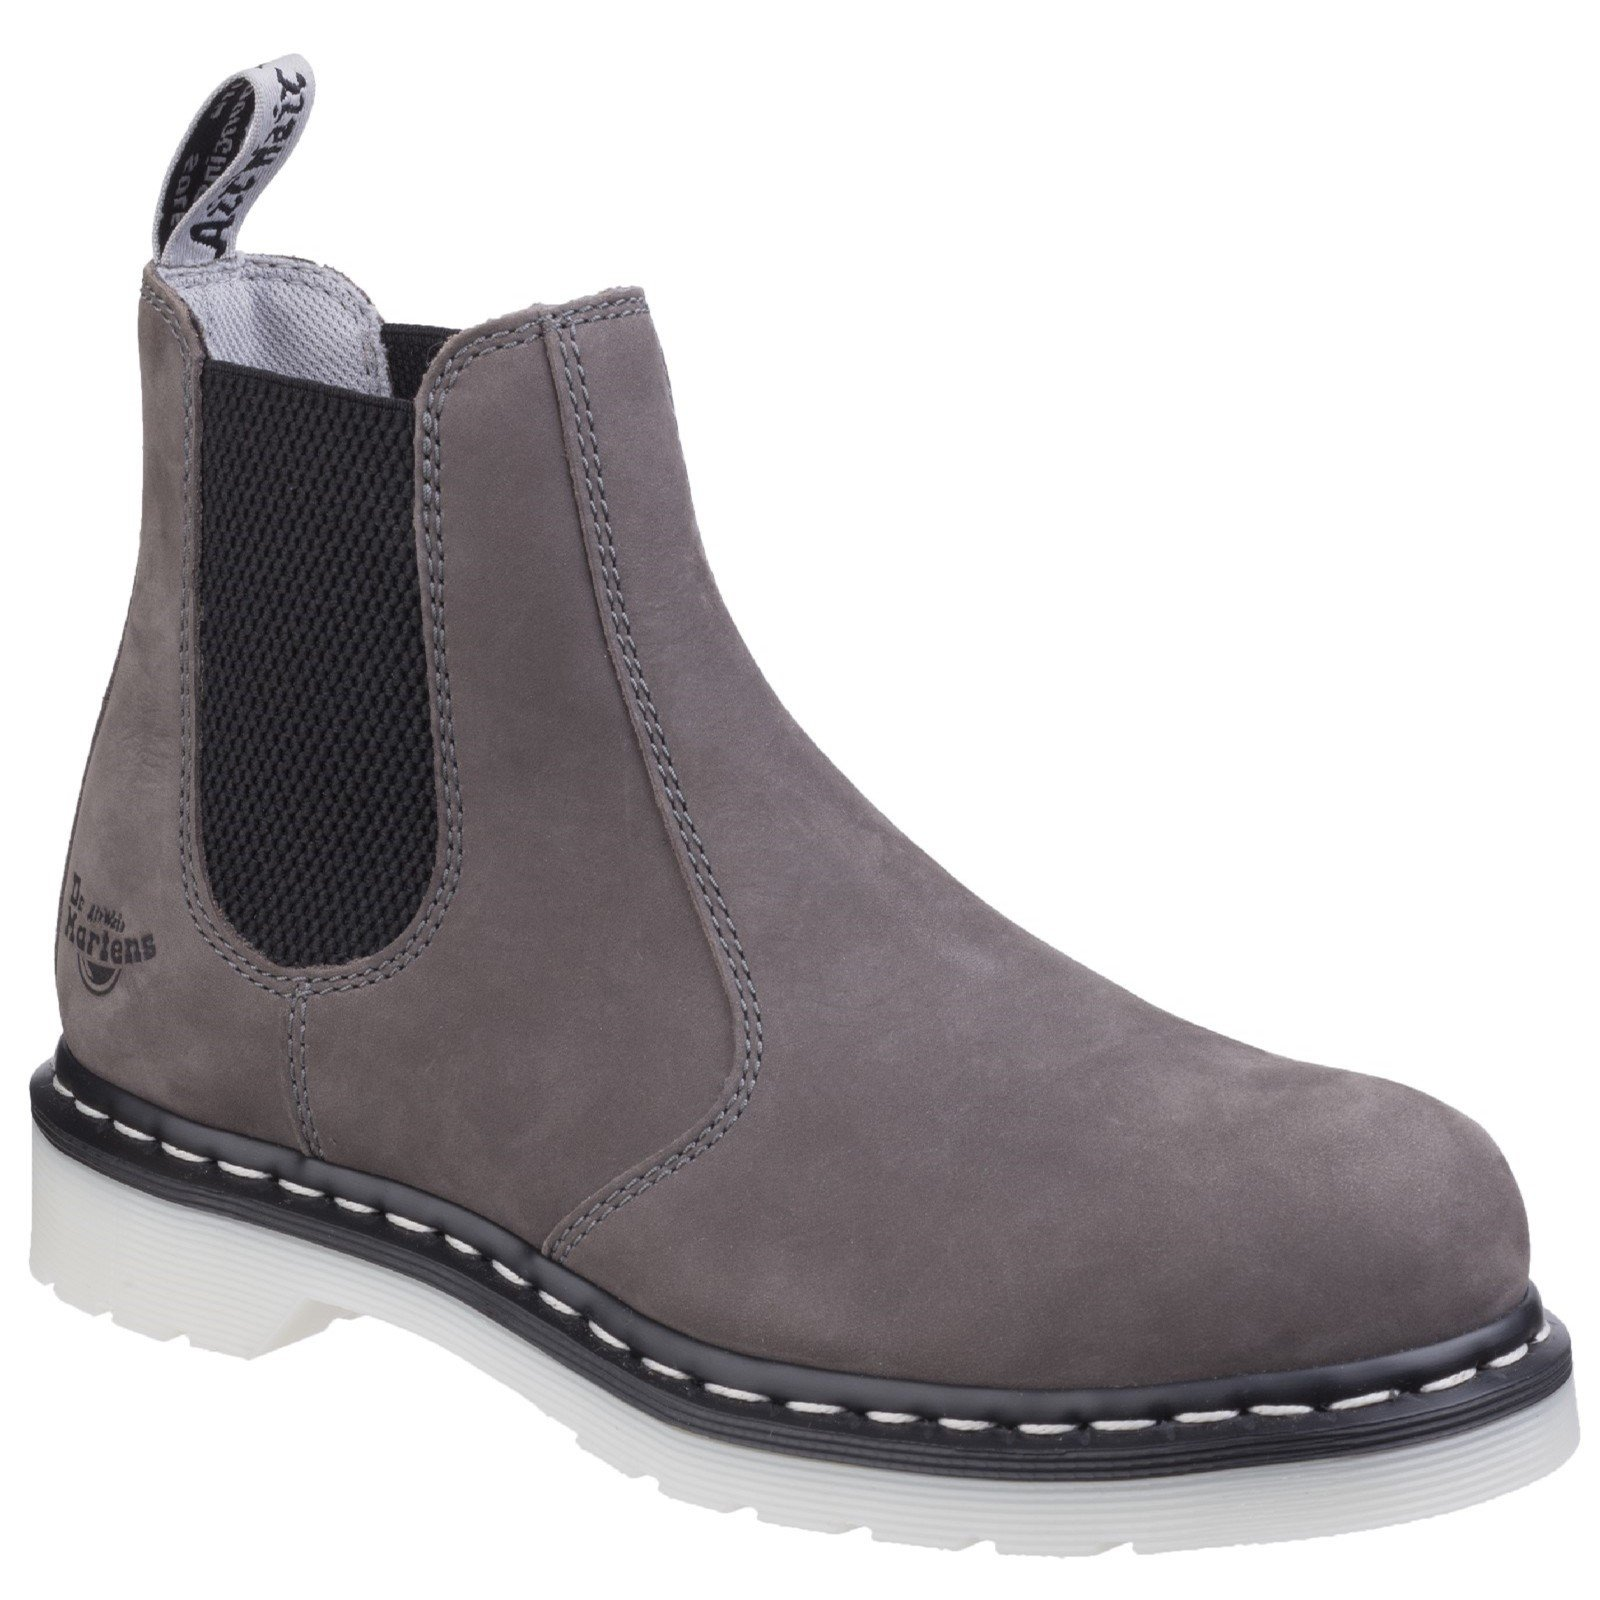 Dr Martens Women's Arbor Elastic Safety Boot Various Colours 29517 - Grey Wind River 3